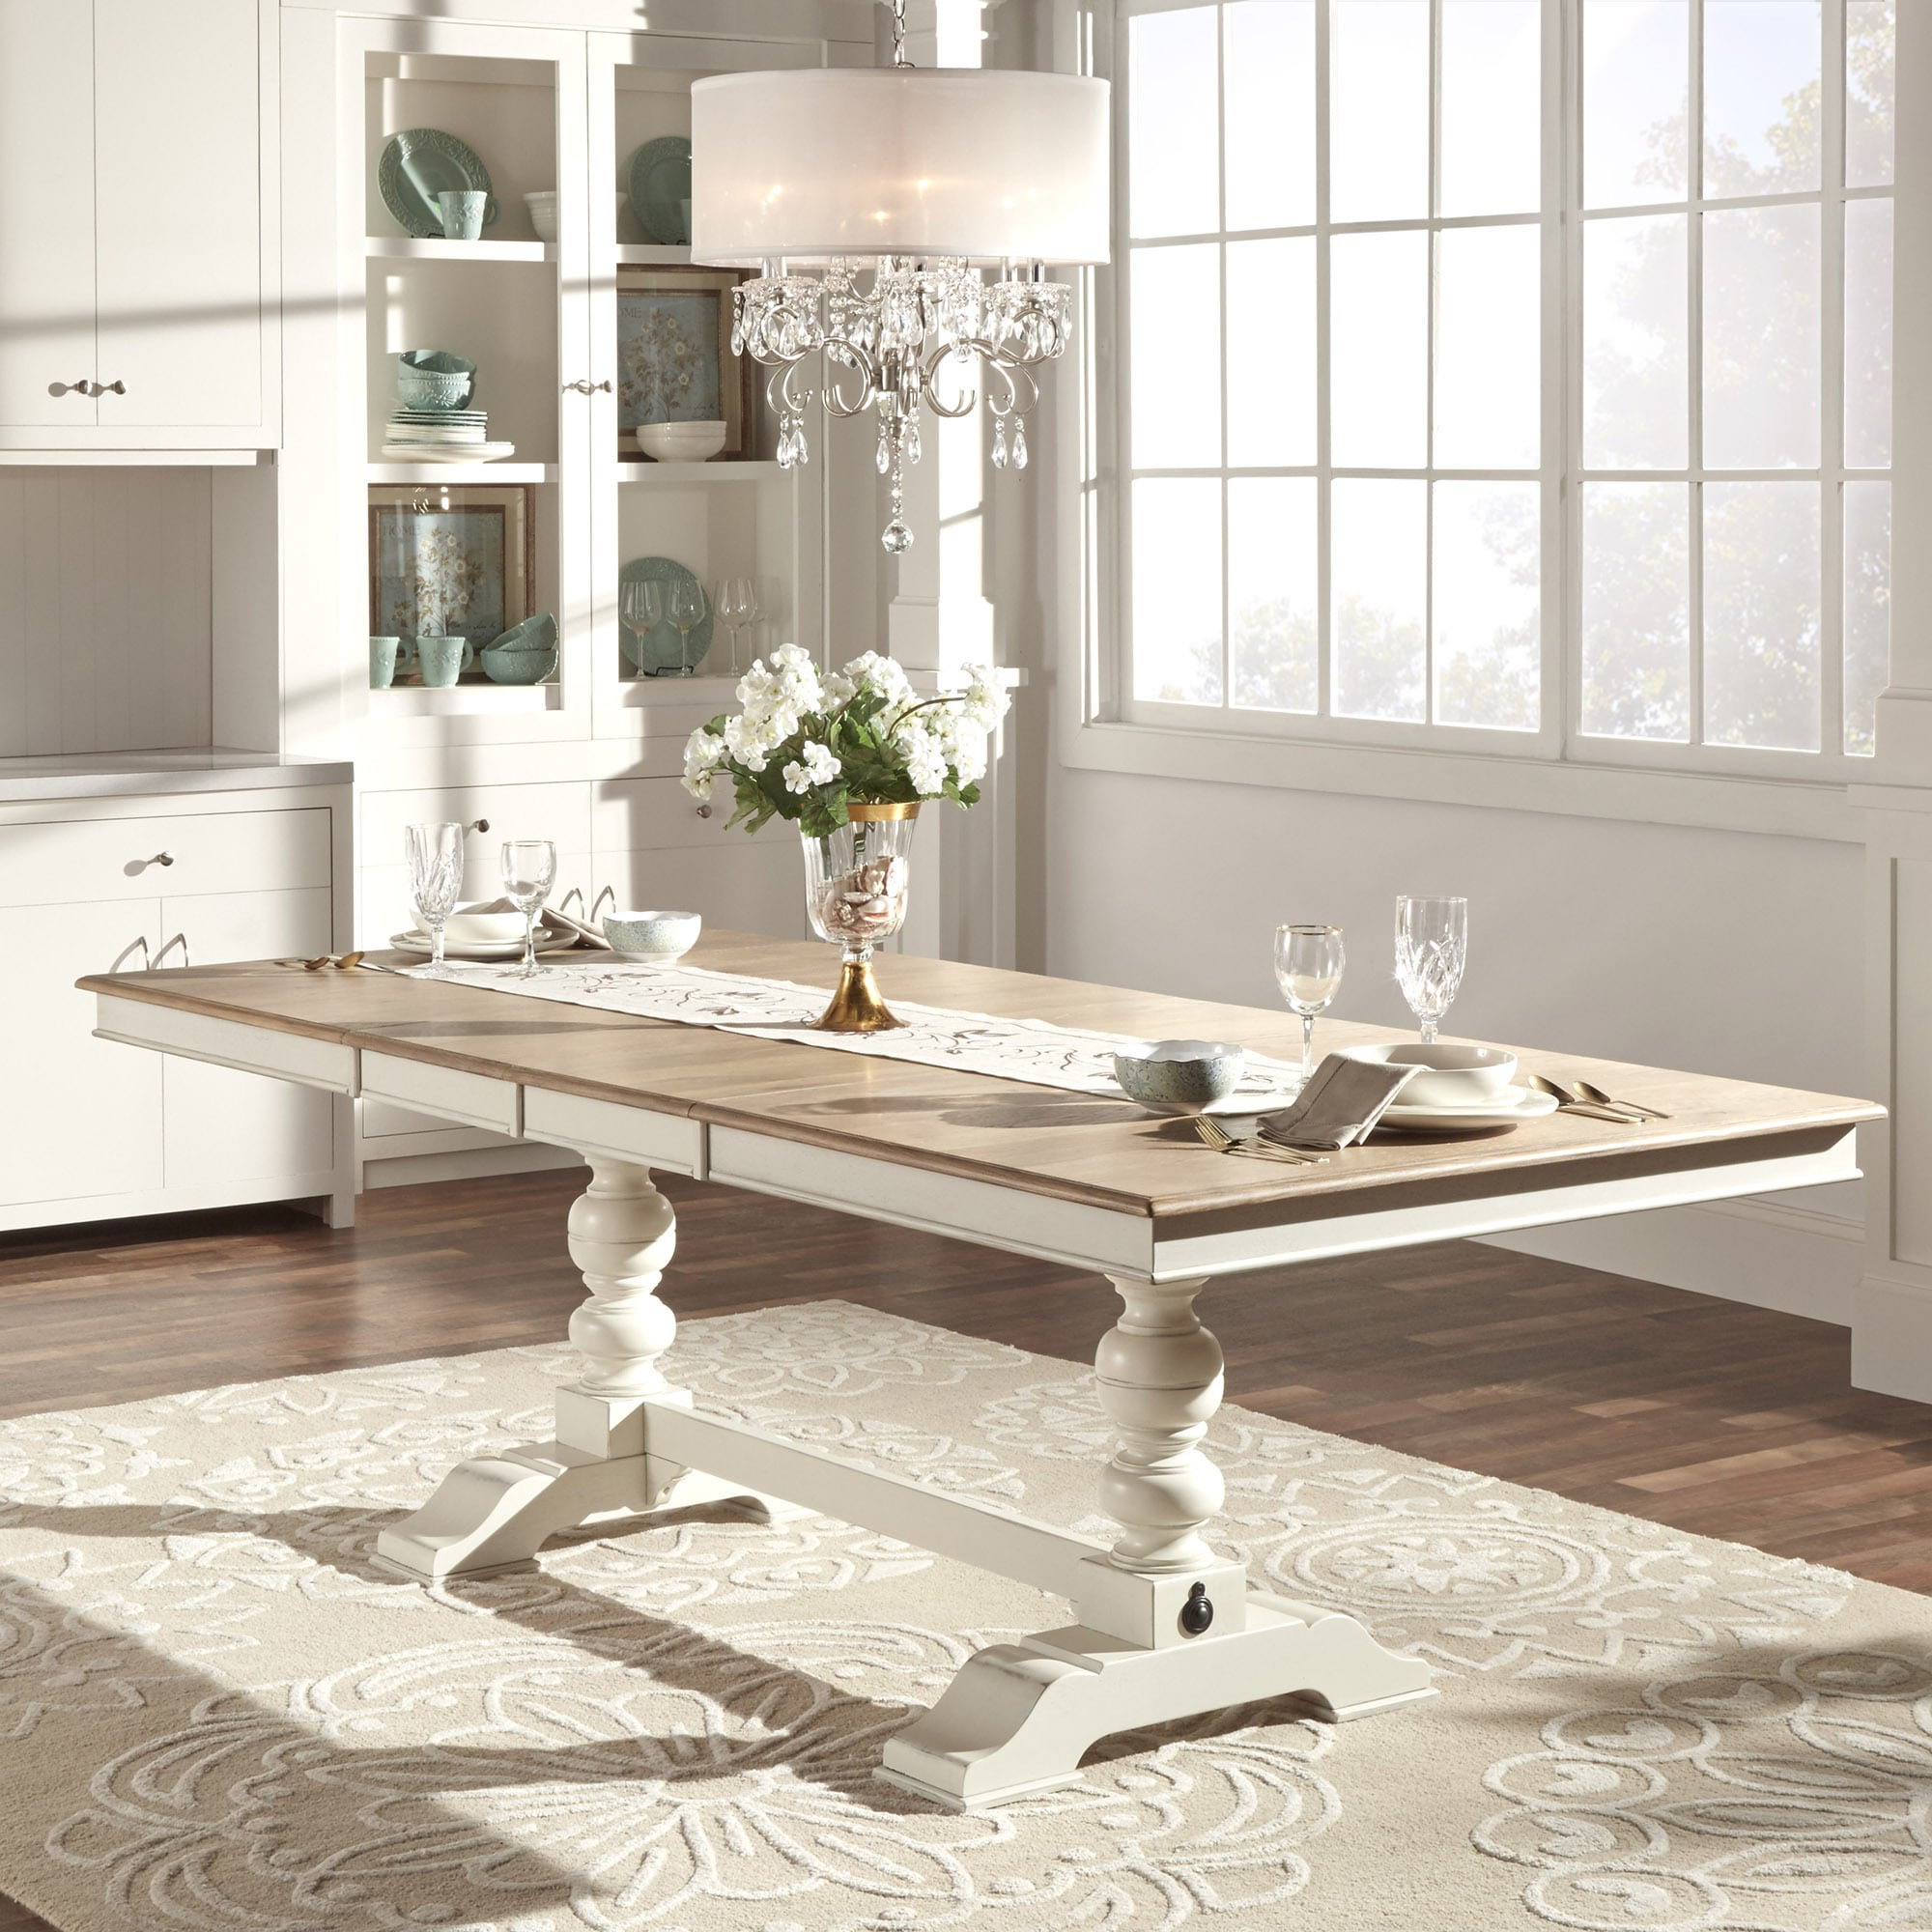 Country Dining Table With Bench: TRIBECCA HOME McKay Country Antique White Pedestal